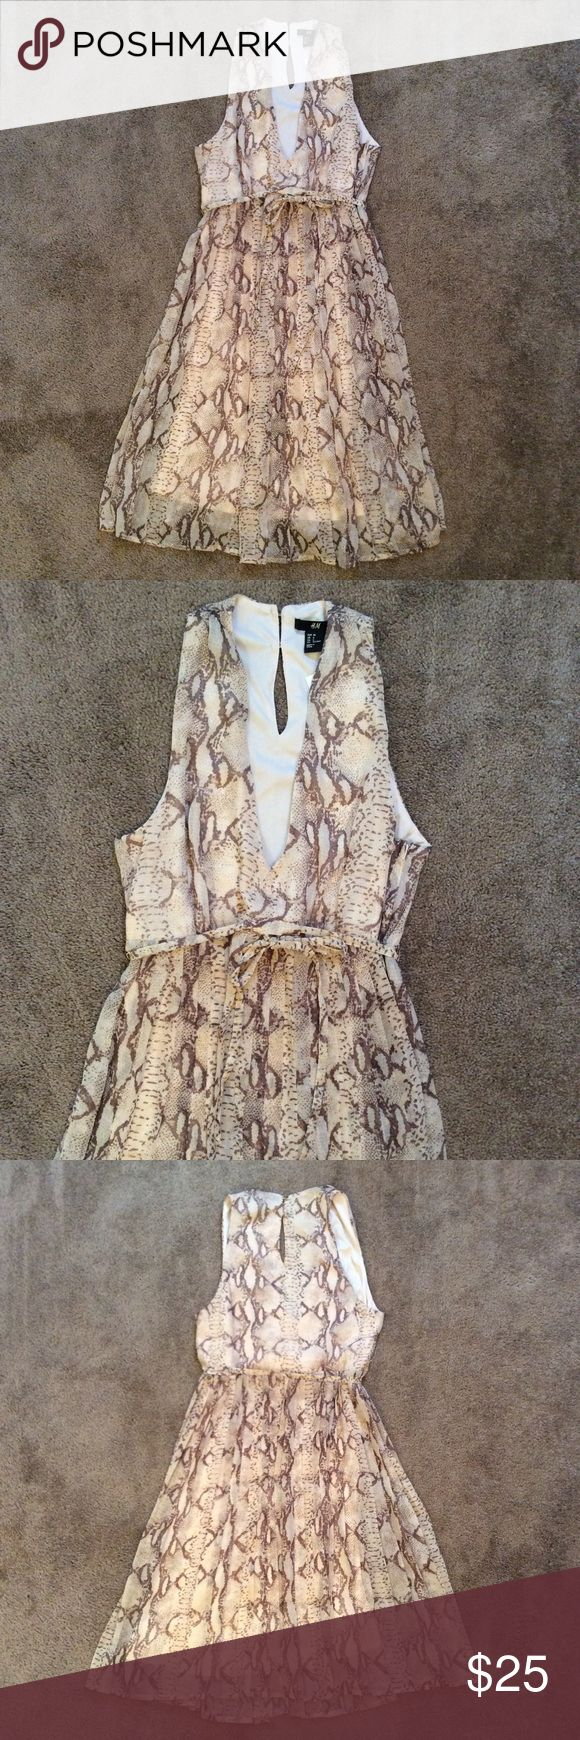 NWT H&M Python Print Dress NWT H&M Python Print Dress, Cream & Brown Colored, Size 6, last pic shows broken belt loop but Belt is attached through dress so not a big deal, Belt ties in front H&M Dresses